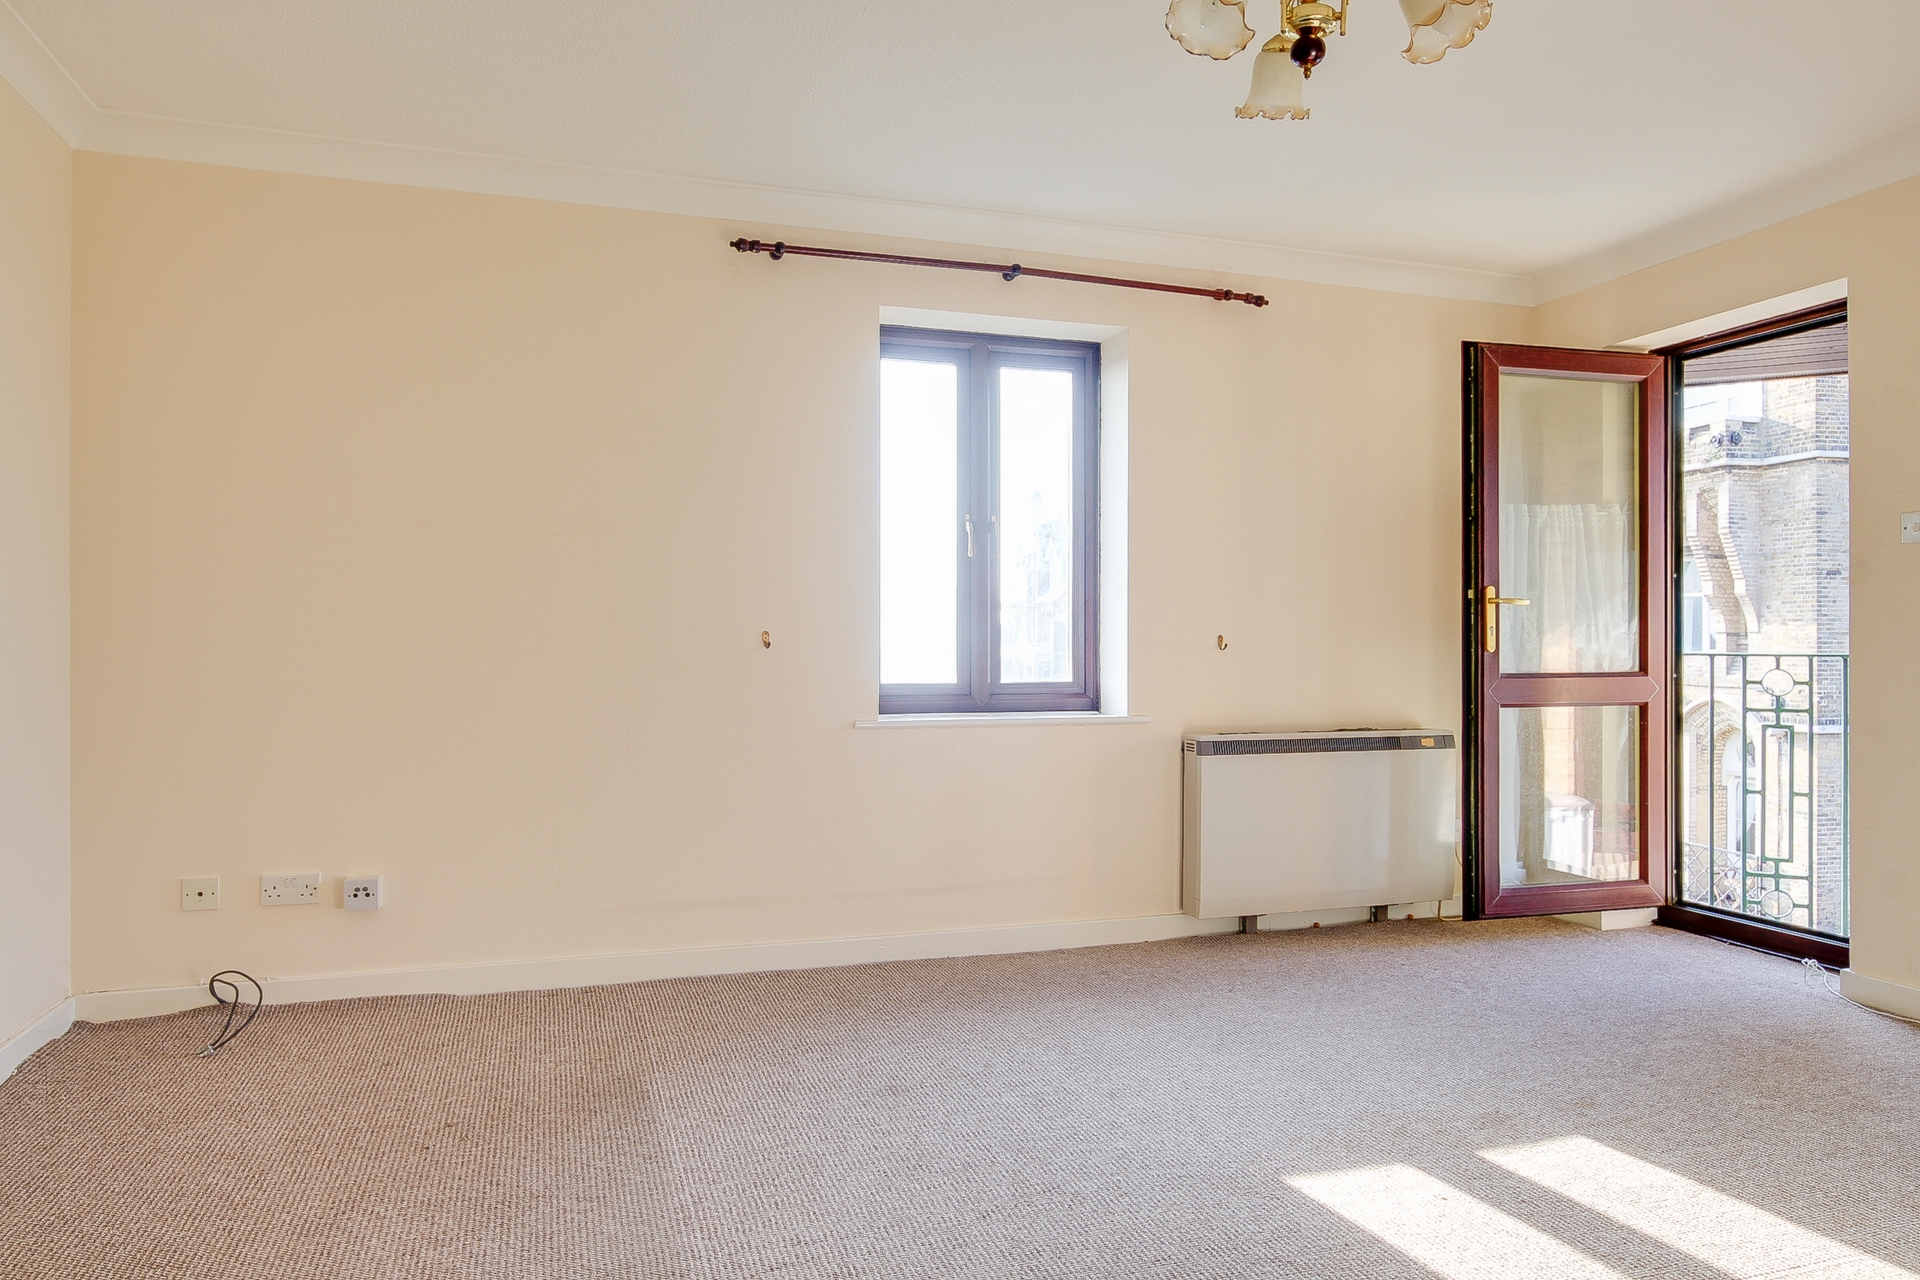 2 bed flat to rent in Victoria Road, Ramsgate, CT11  - Property Image 2